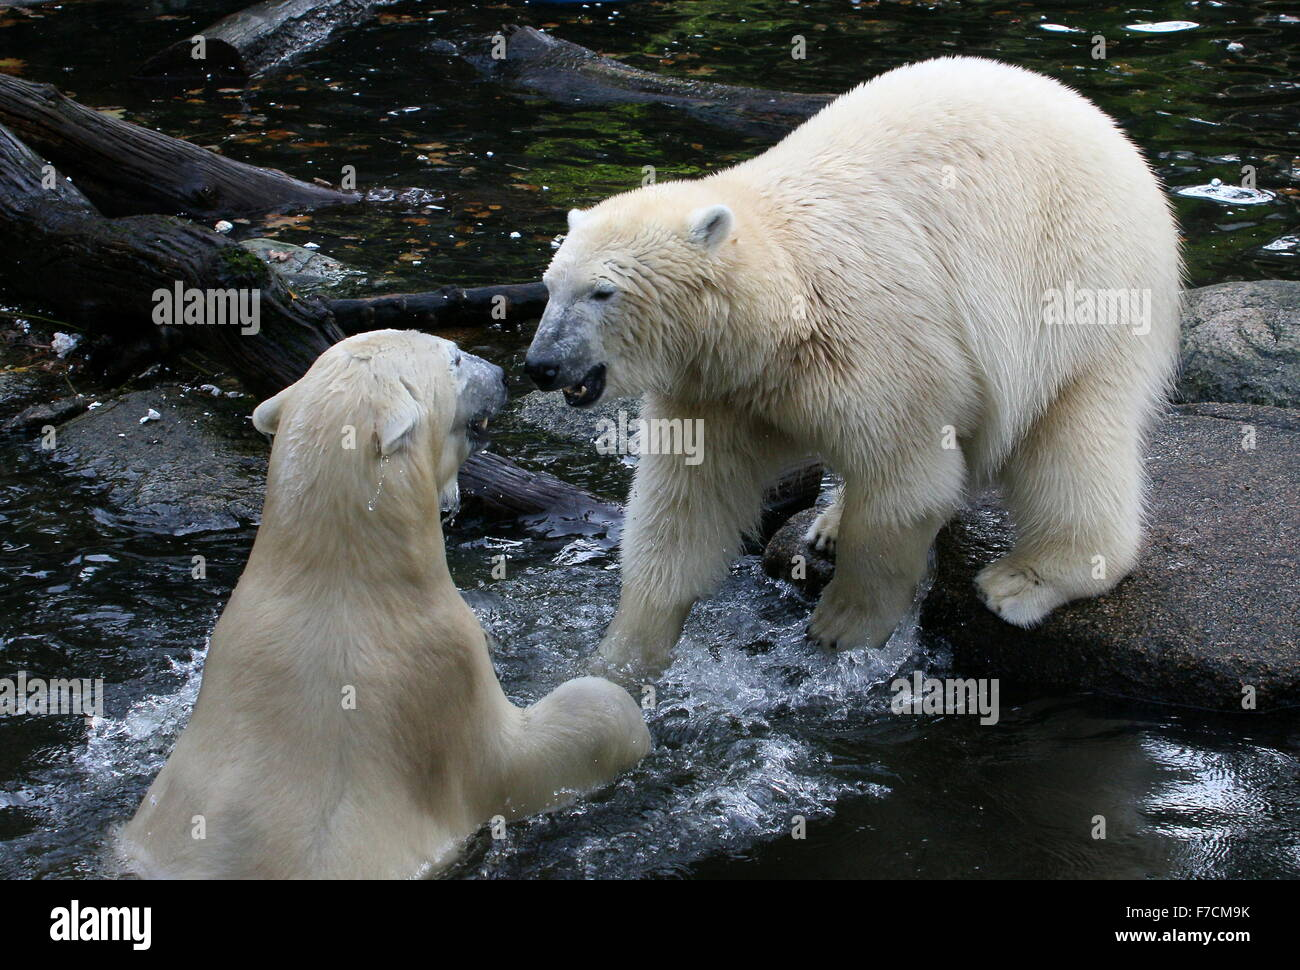 Two aggressive female Polar bears (Ursus maritimus) fighting and confronting each other on shore - Stock Image